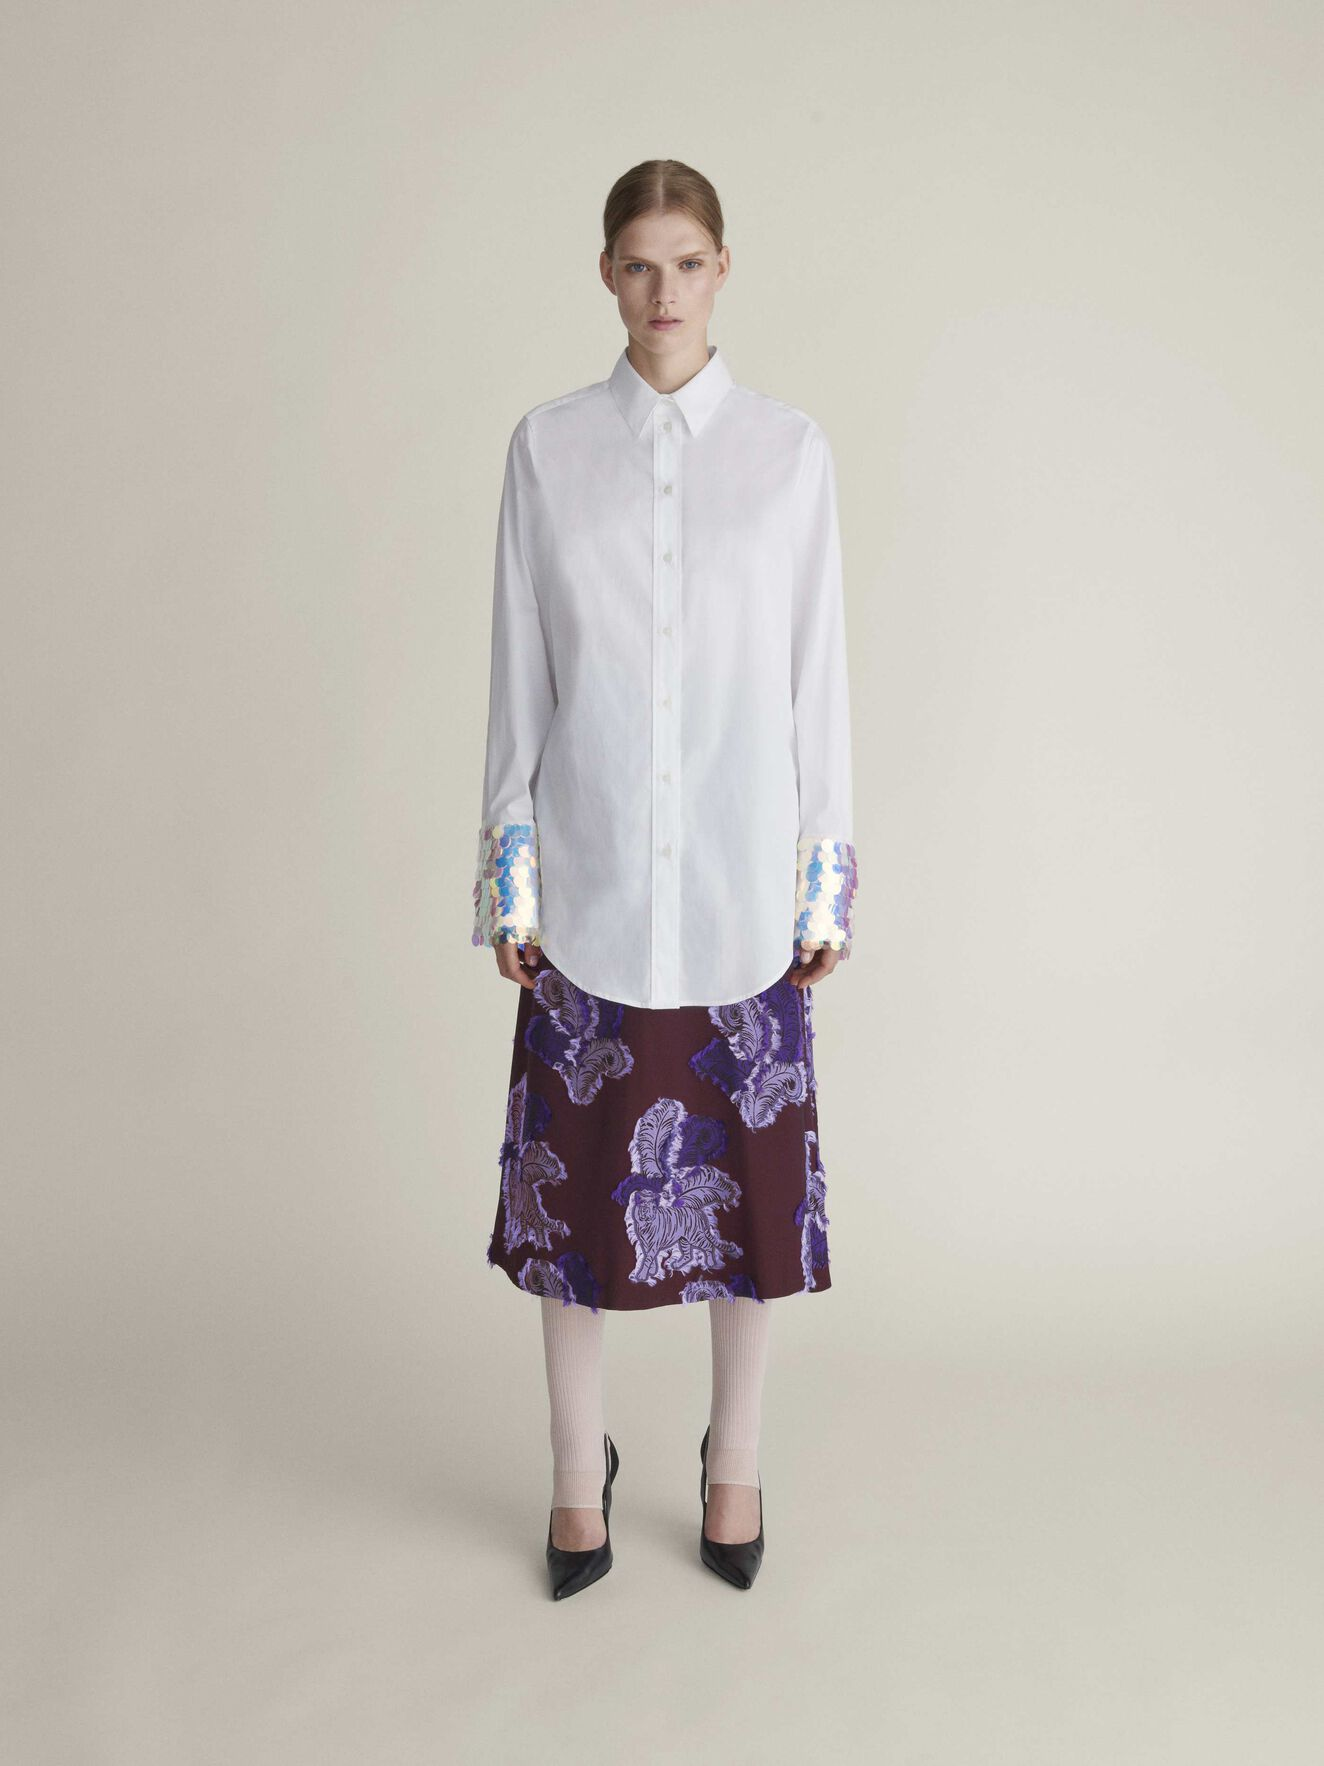 Meda C Shirt in Bright White from Tiger of Sweden